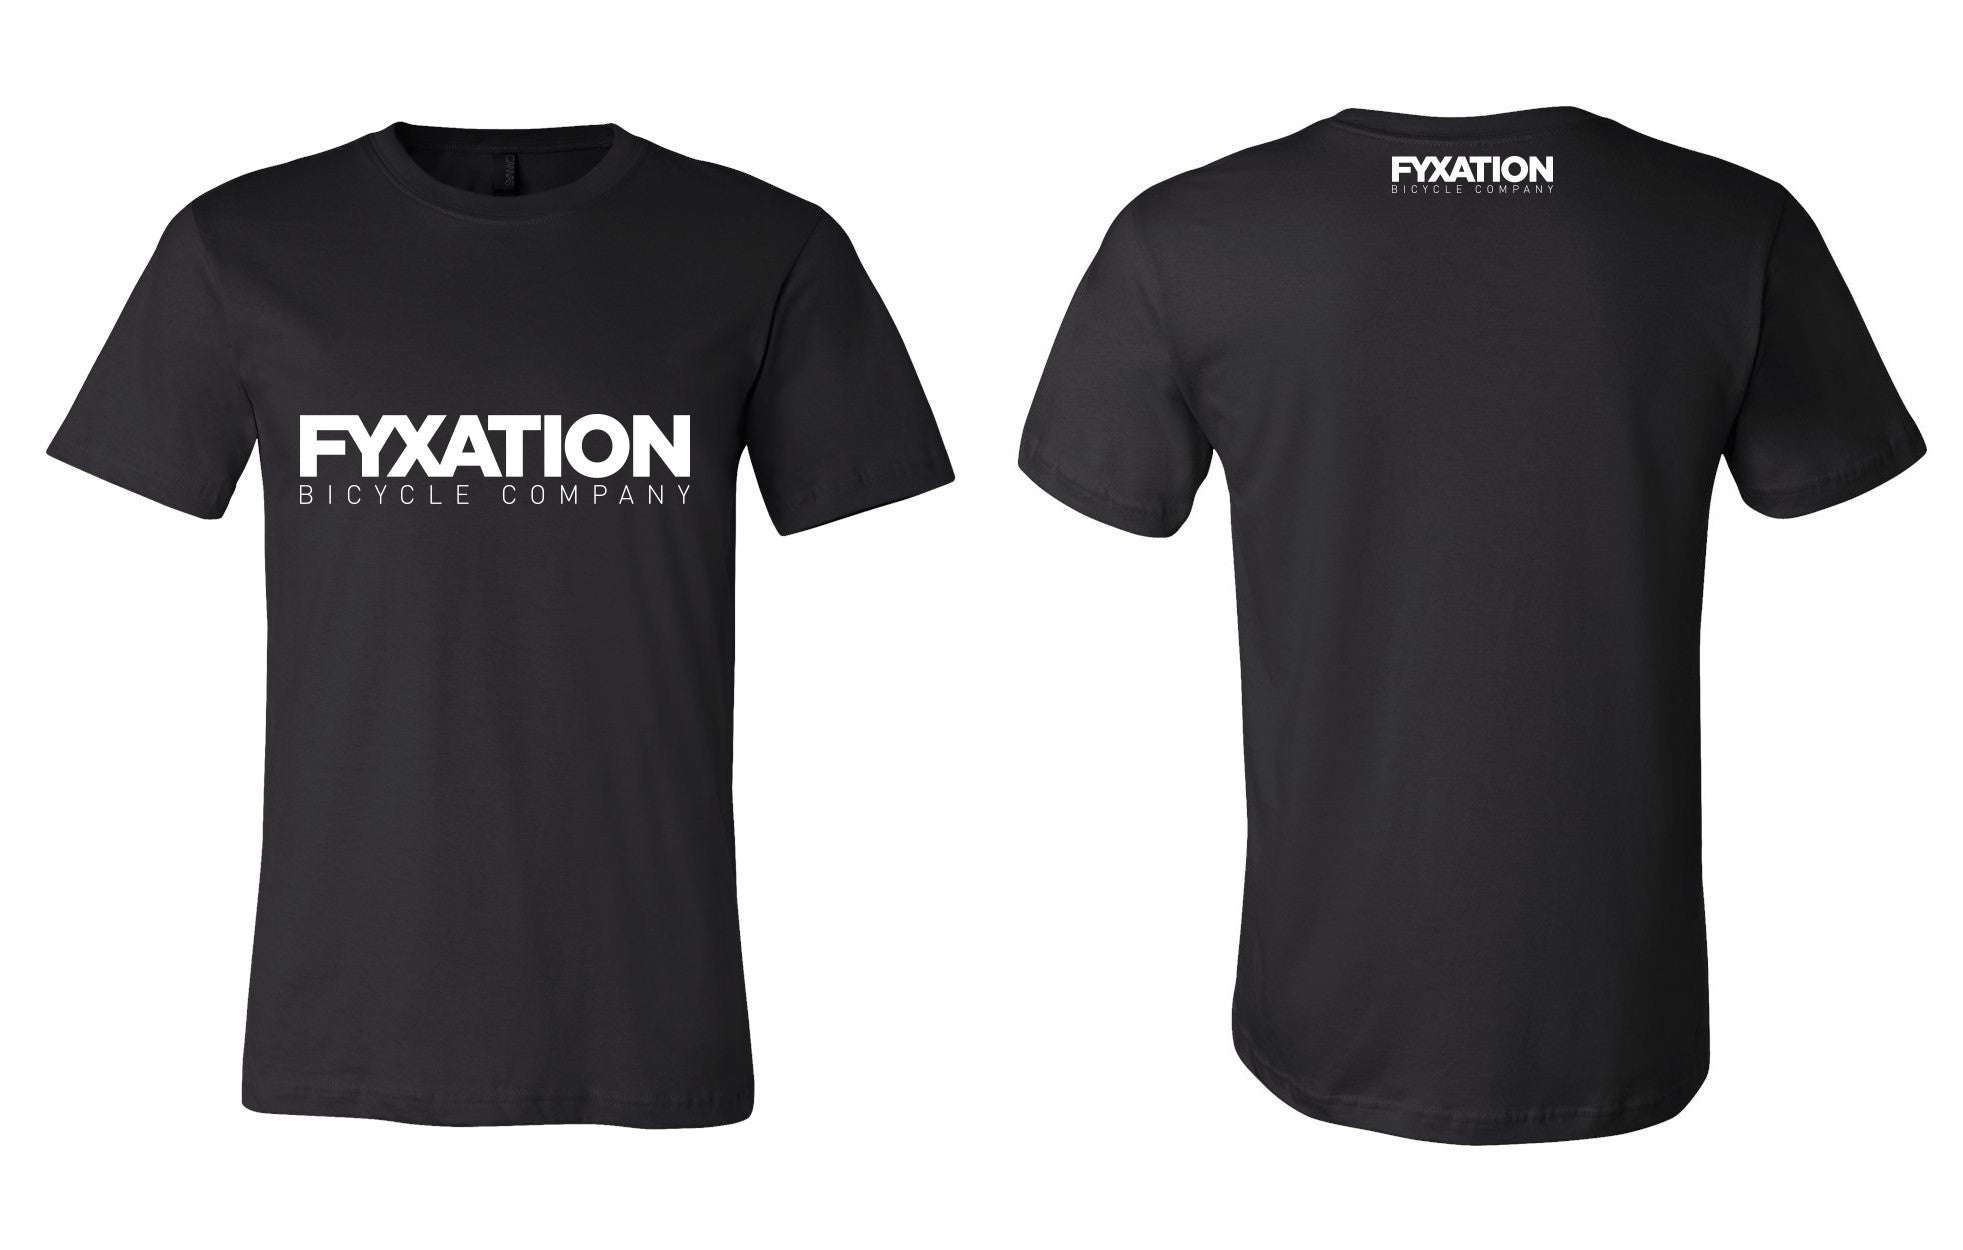 fyxation bicycle company logo t shirt fyxation